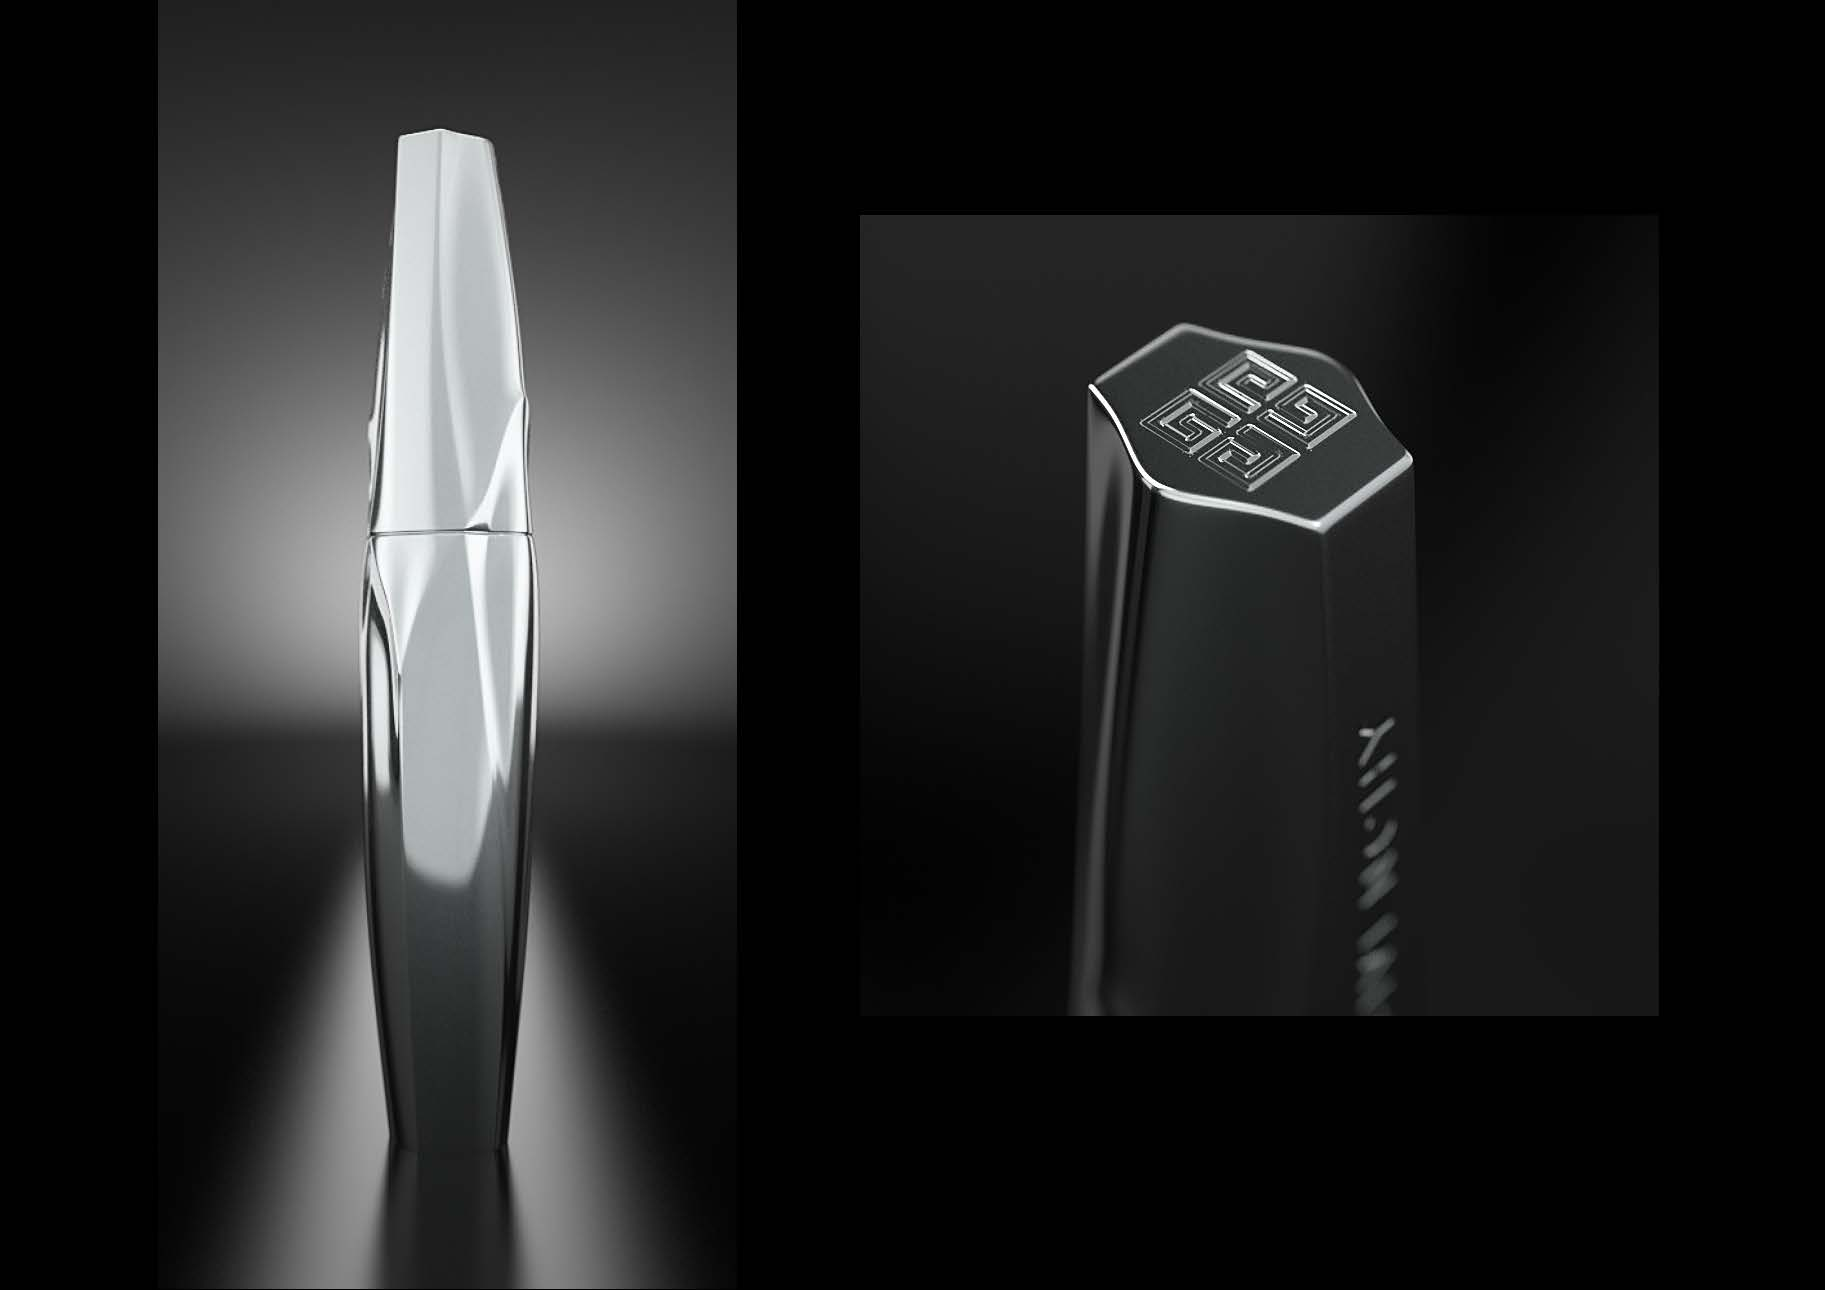 Givenchy mascaras w dimensions, I_Page_47.jpg